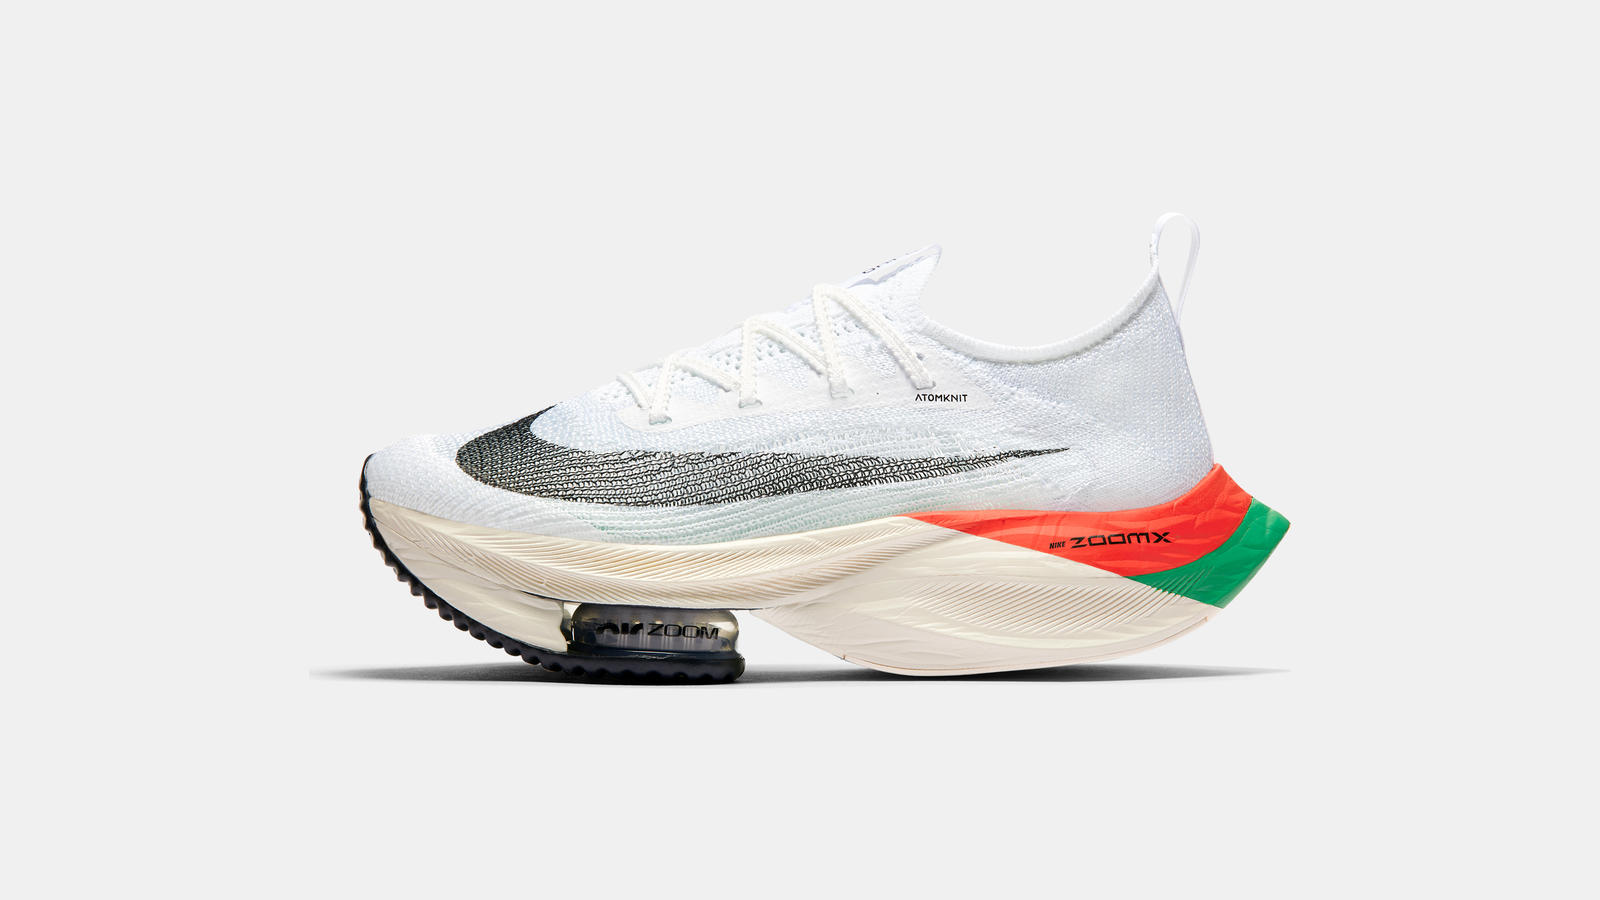 nike-air-zoom-alphafly-next-percent-1:59:40-colorway-kenya-colorway-mango-colorway-official-images-and-release-date